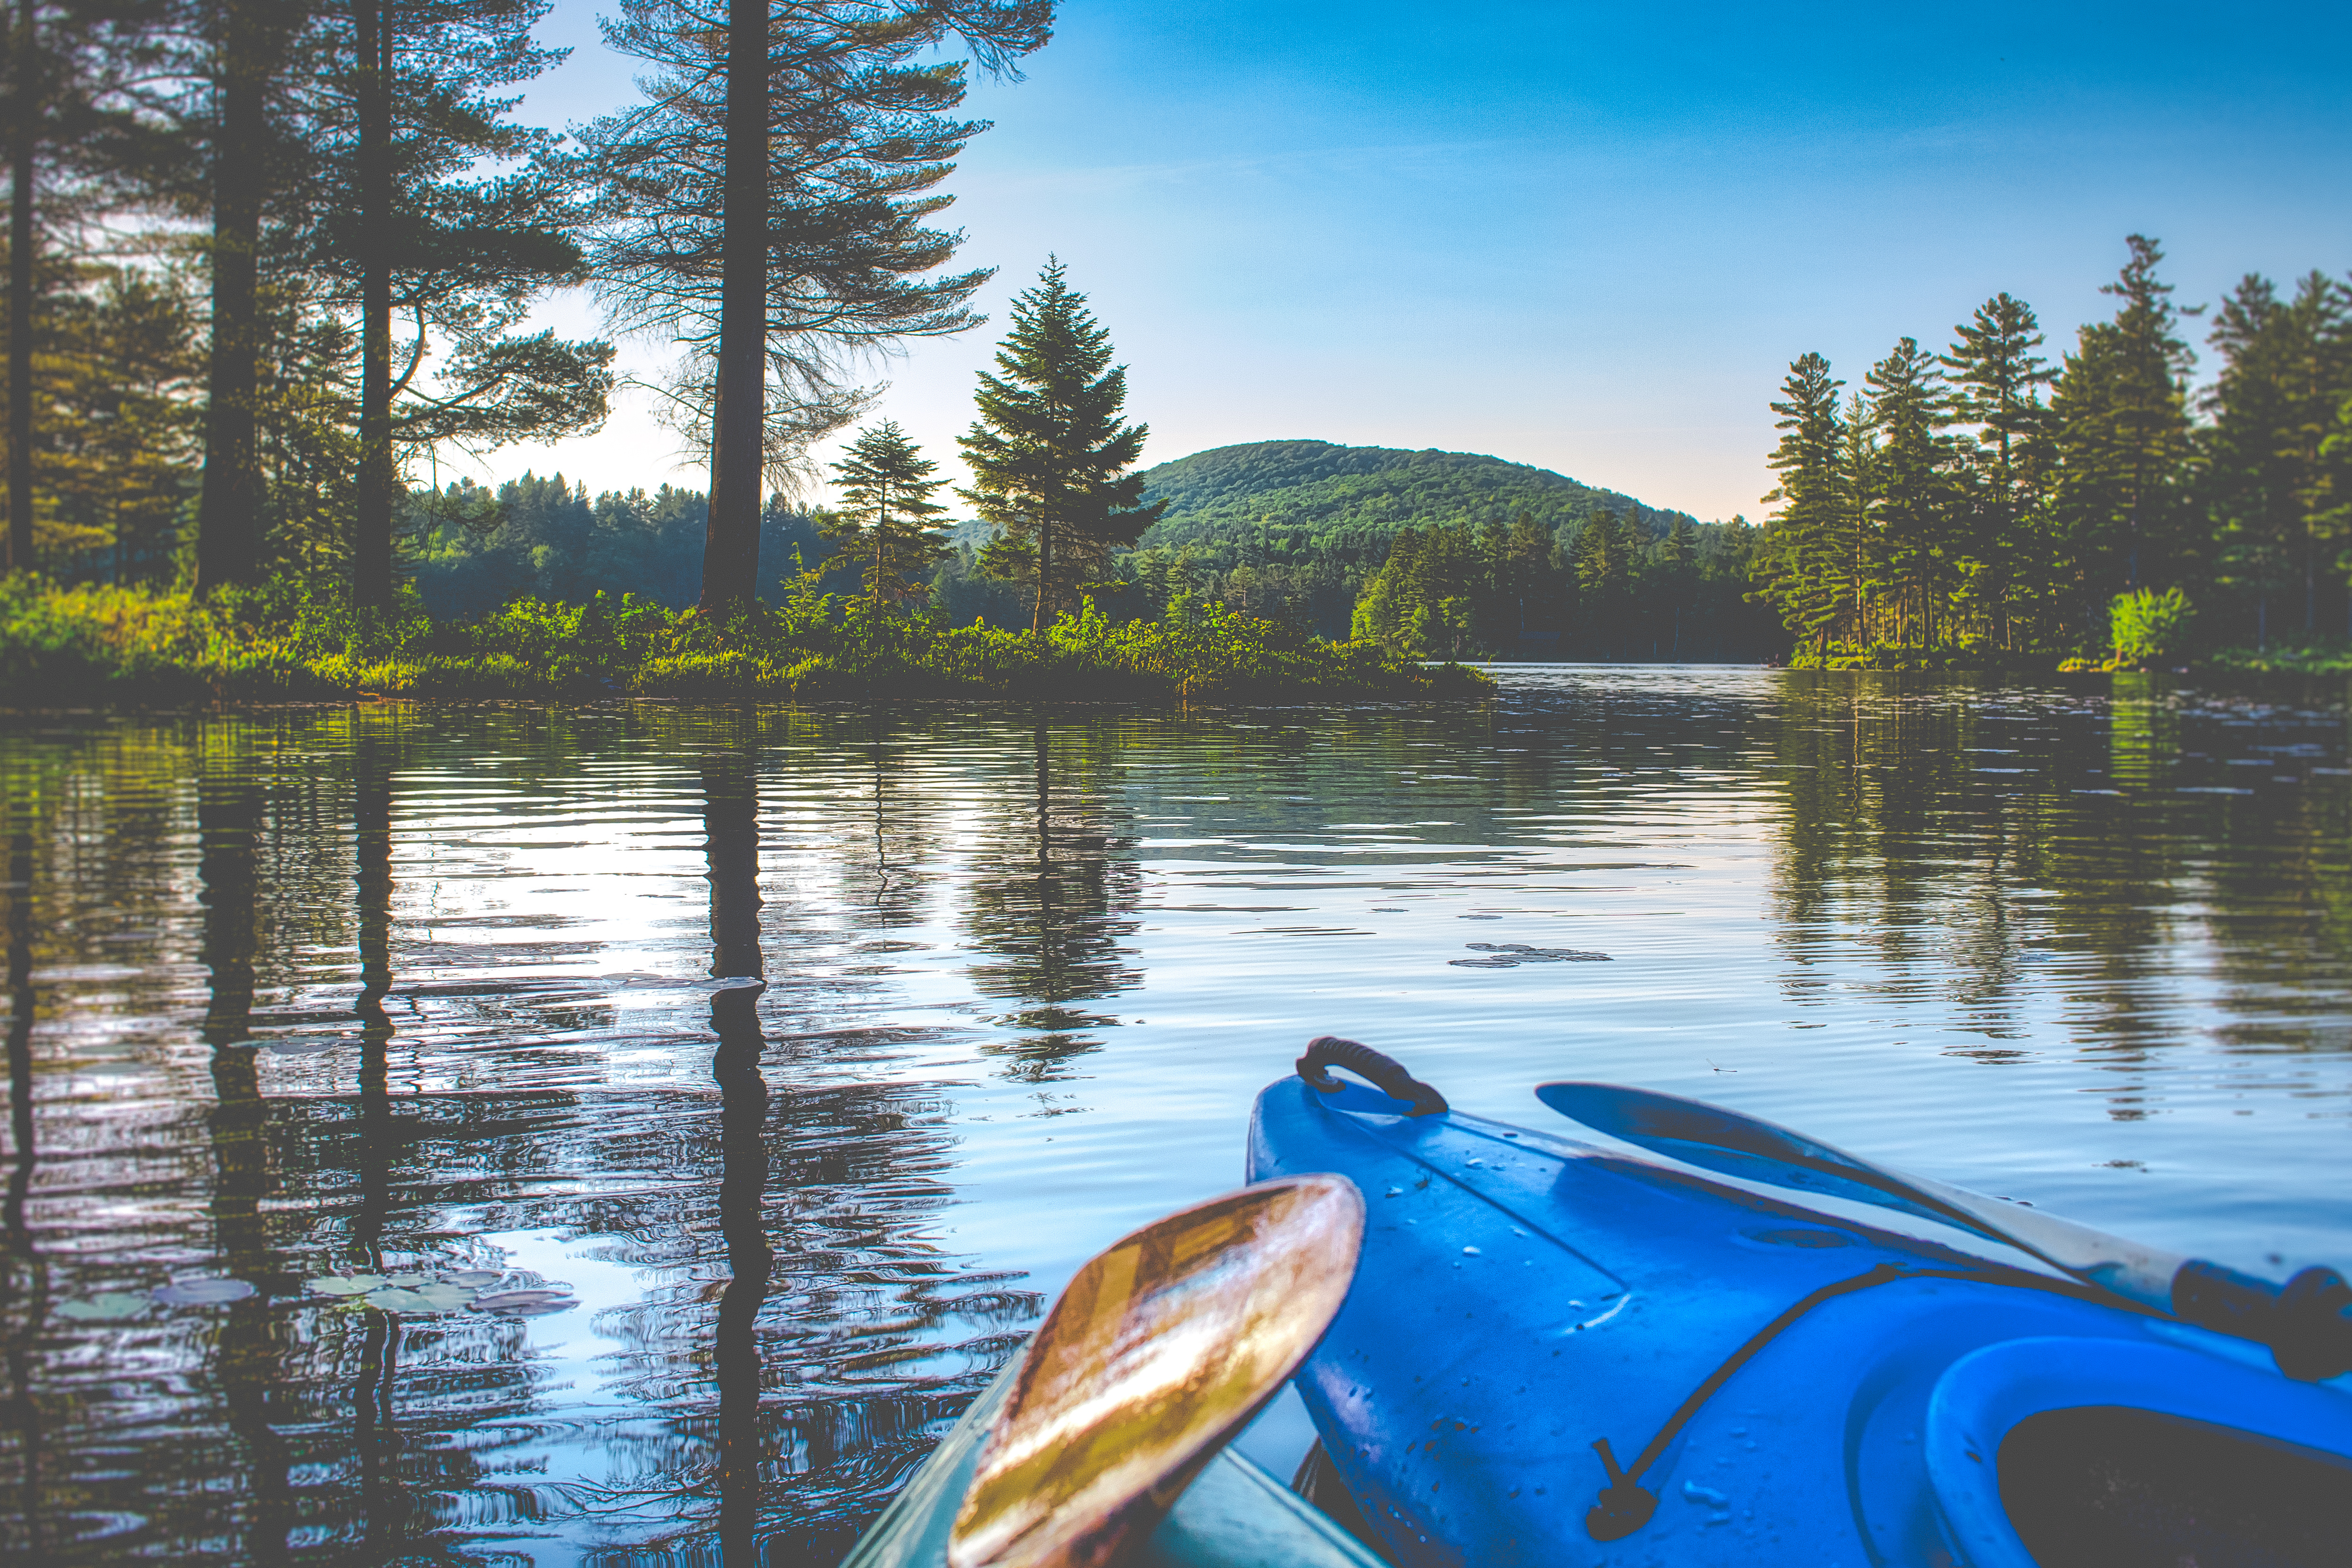 A scenic view of surrounding mountains and woods as shown by a kayak in th ewater